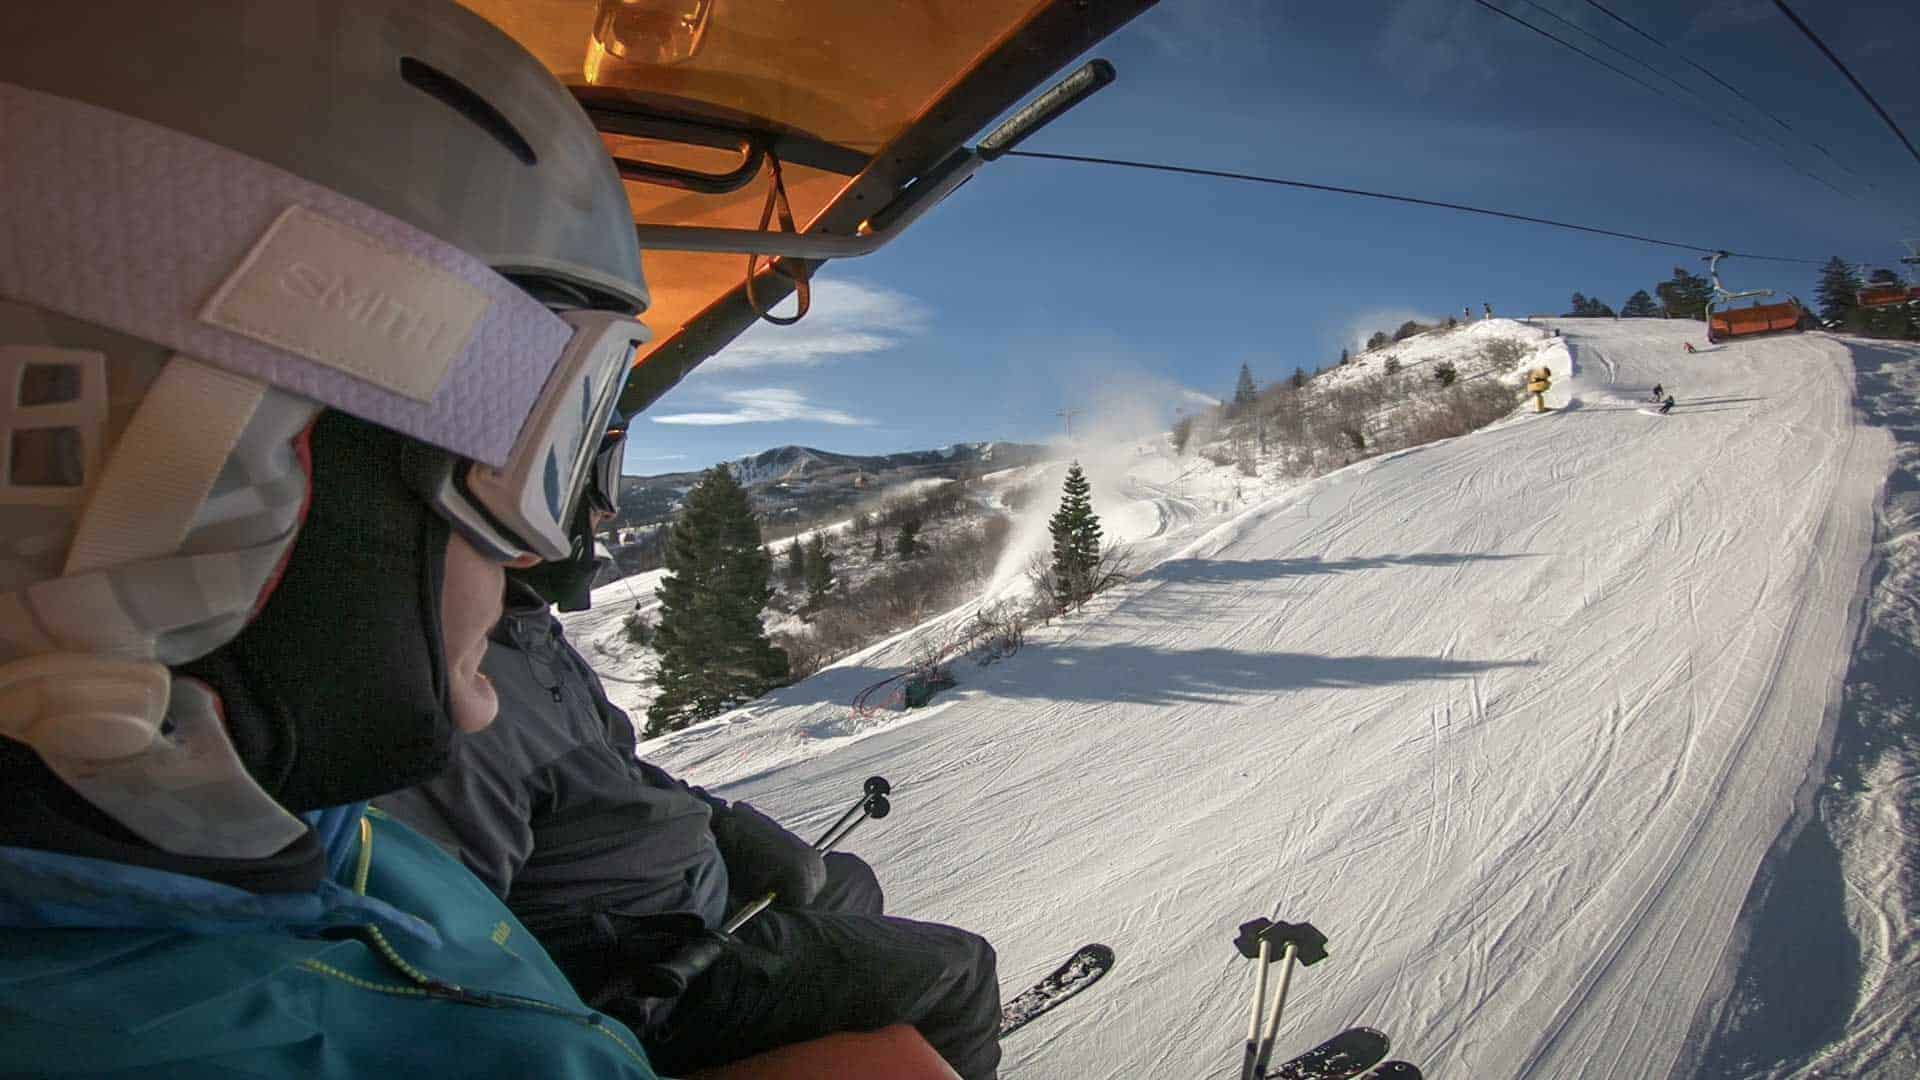 Skiing Park City Mountain Resort 1 - How to Make the Most of Your Park City Ski Trip